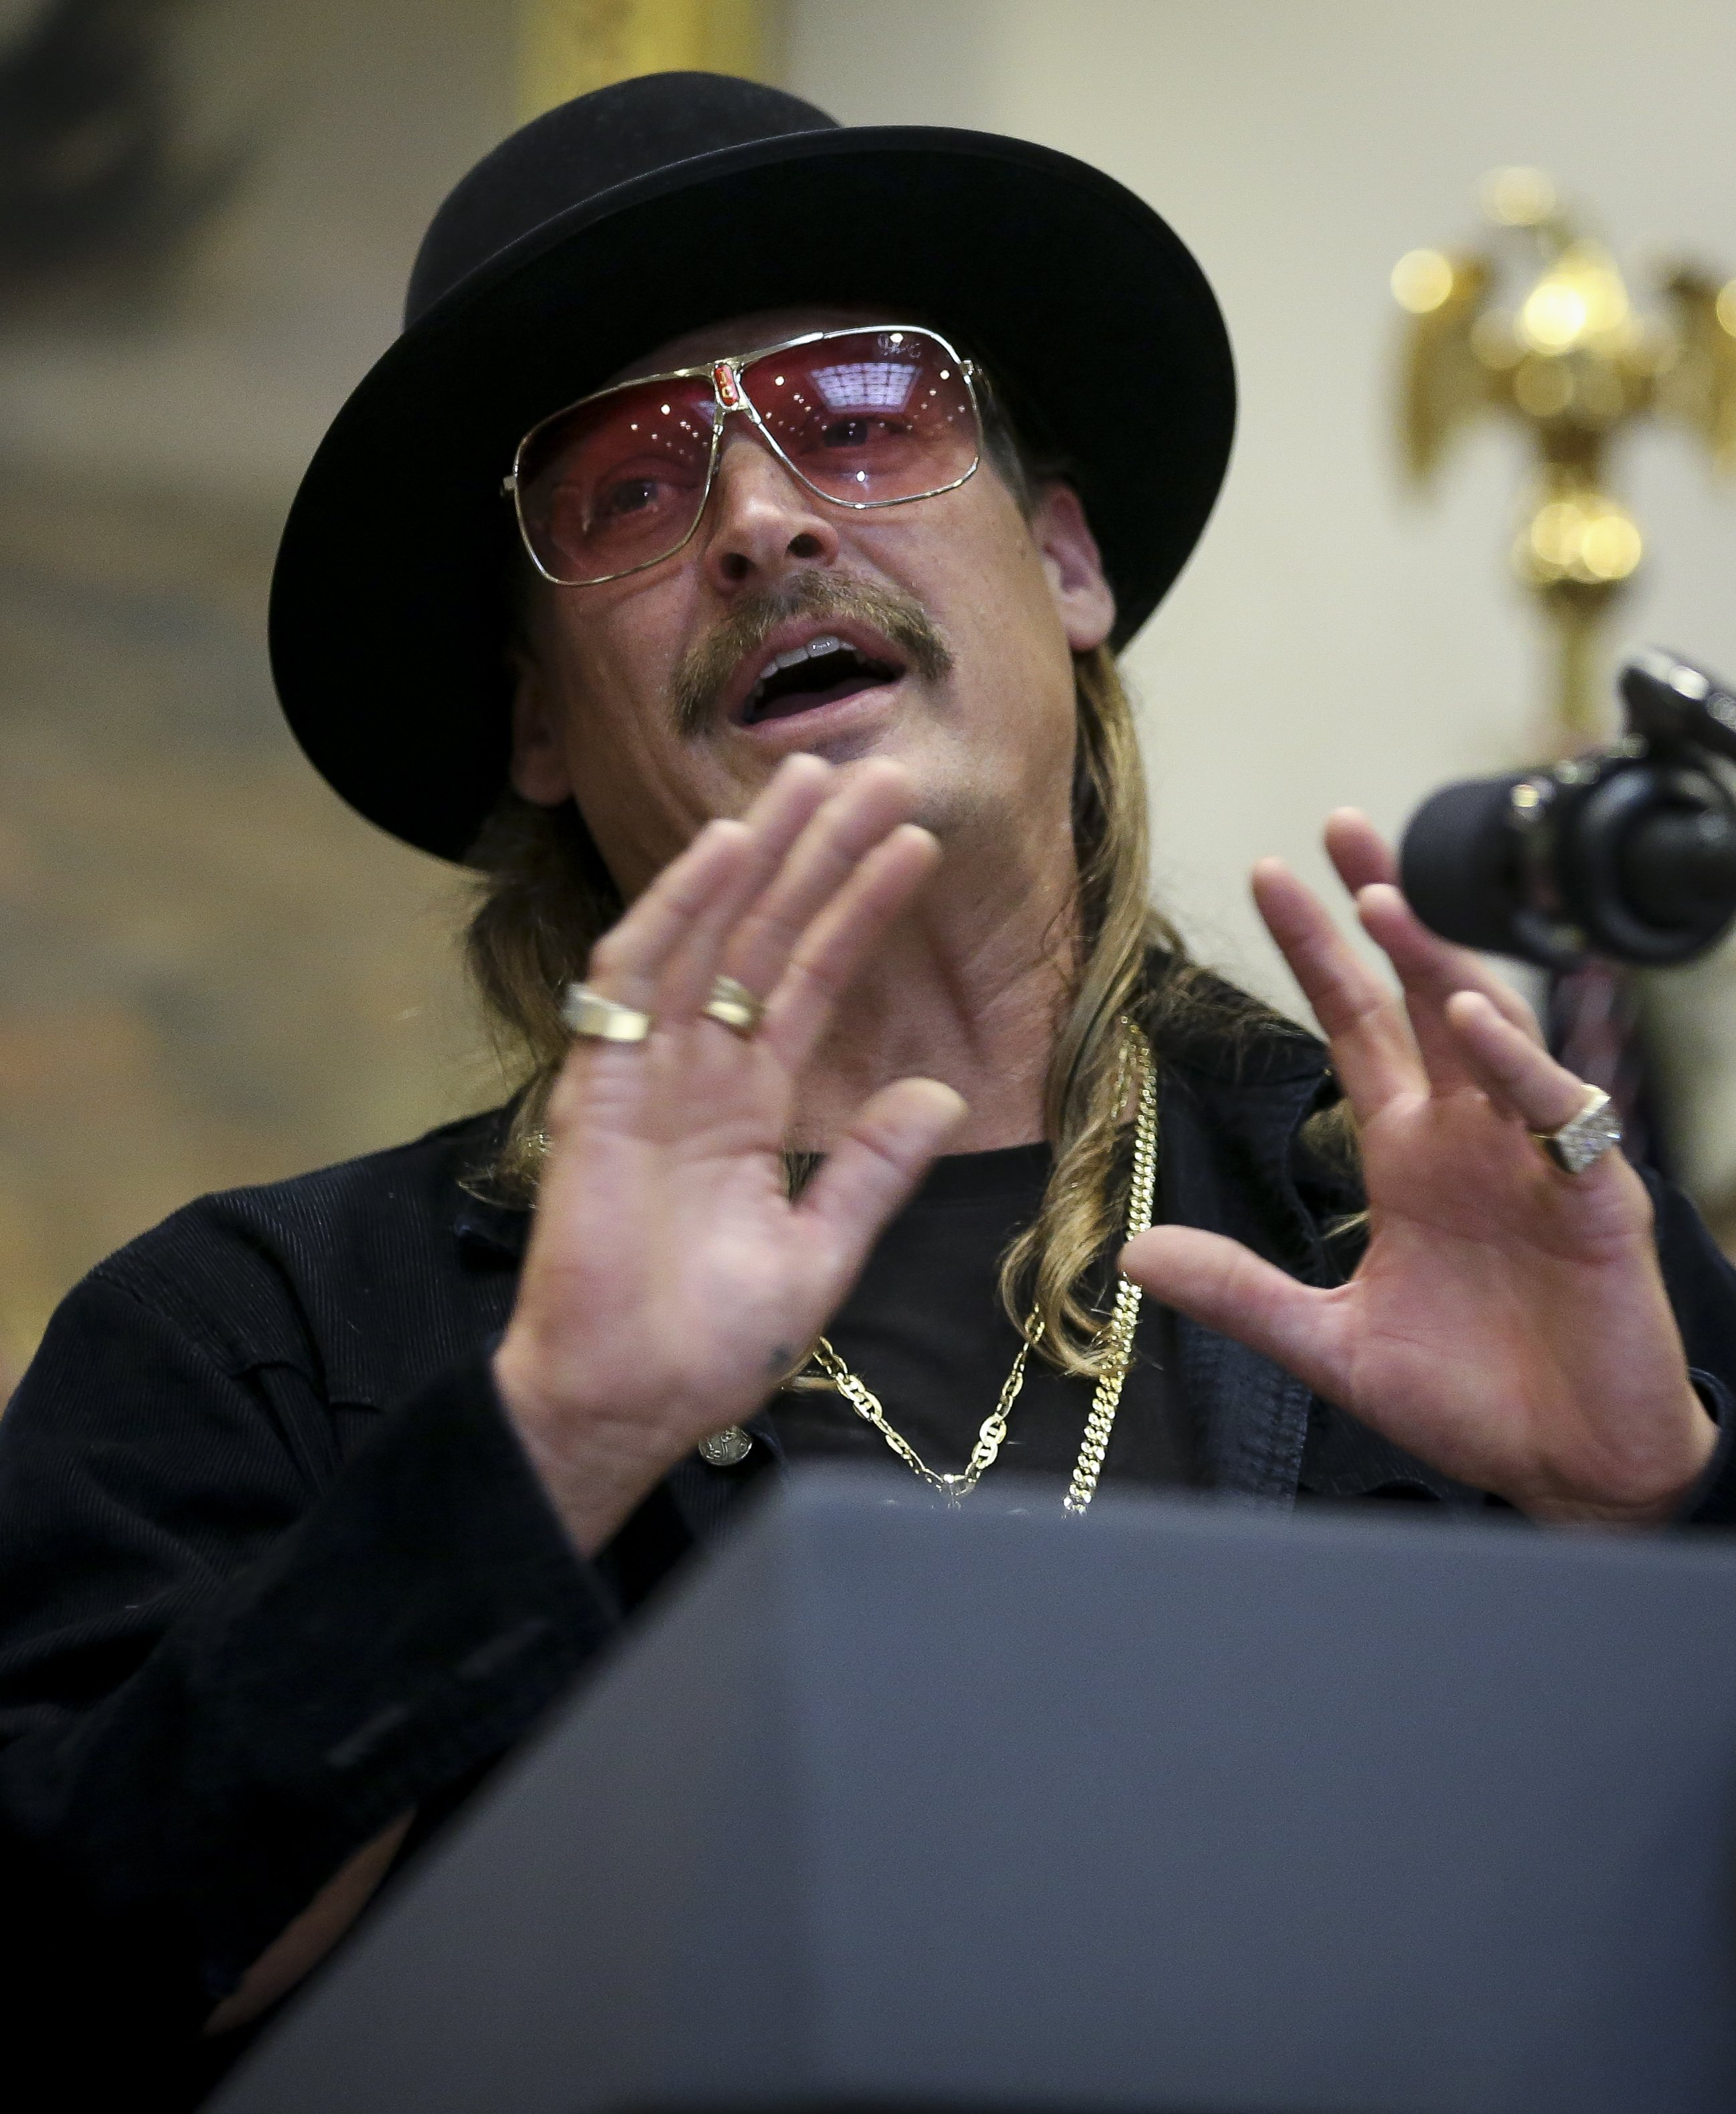 Kid Rock at the Roosevelt Room of the White House to attend the signing of the Orrin G. Hatch-Bob Goodlatte Music Modernization Act on October 11, 2018. | Photo: Getty Images